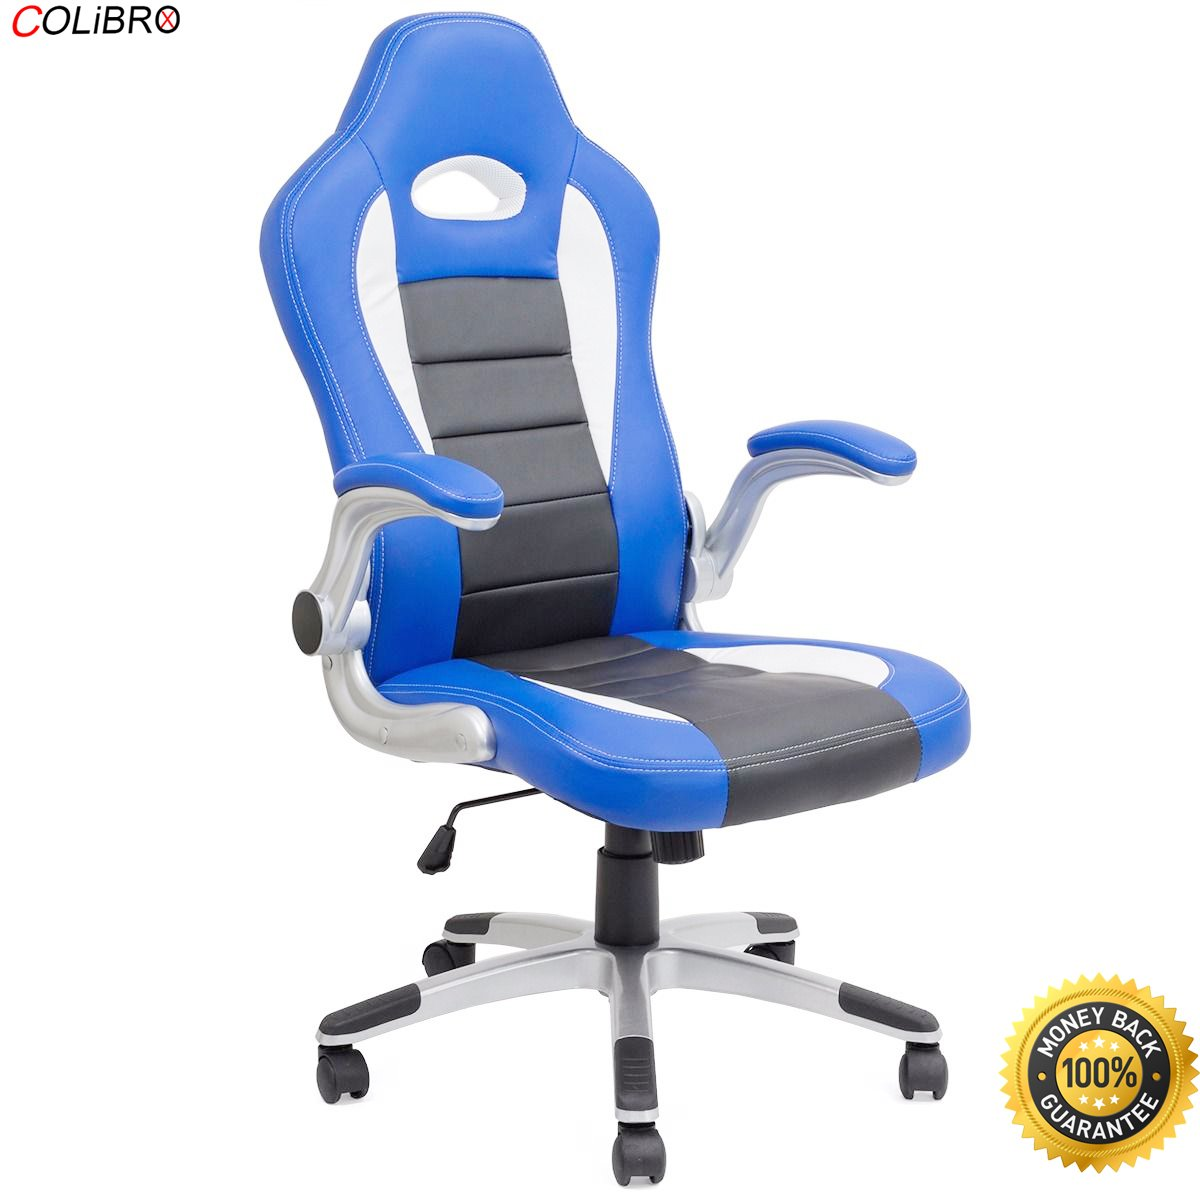 COLIBROX--Office Chair Ergonomic Computer PU Leather Desk Swivel Seat Race Car Game Blue